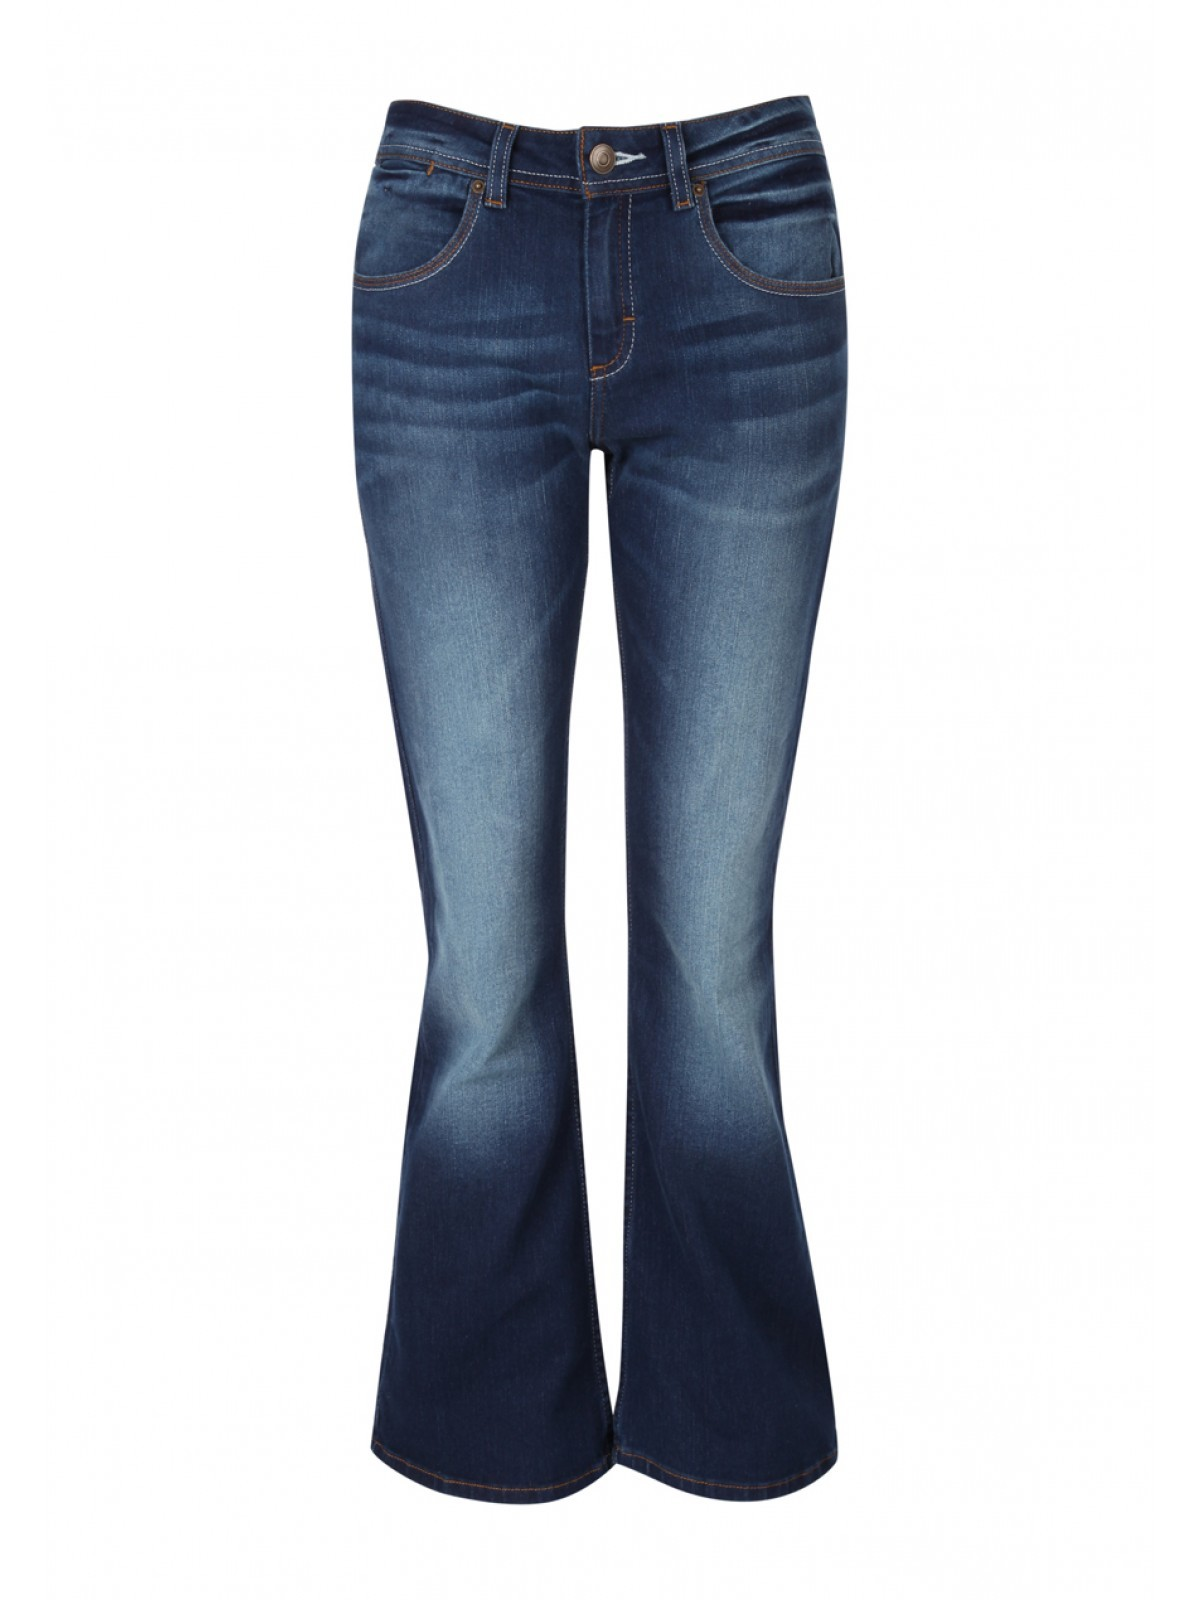 Women's jeans from Levi's® were first designed in , and have been getting better ever since with updated, modern fits. Browse our entire collection of denim jeans including skinny jeans, ripped jeans and .